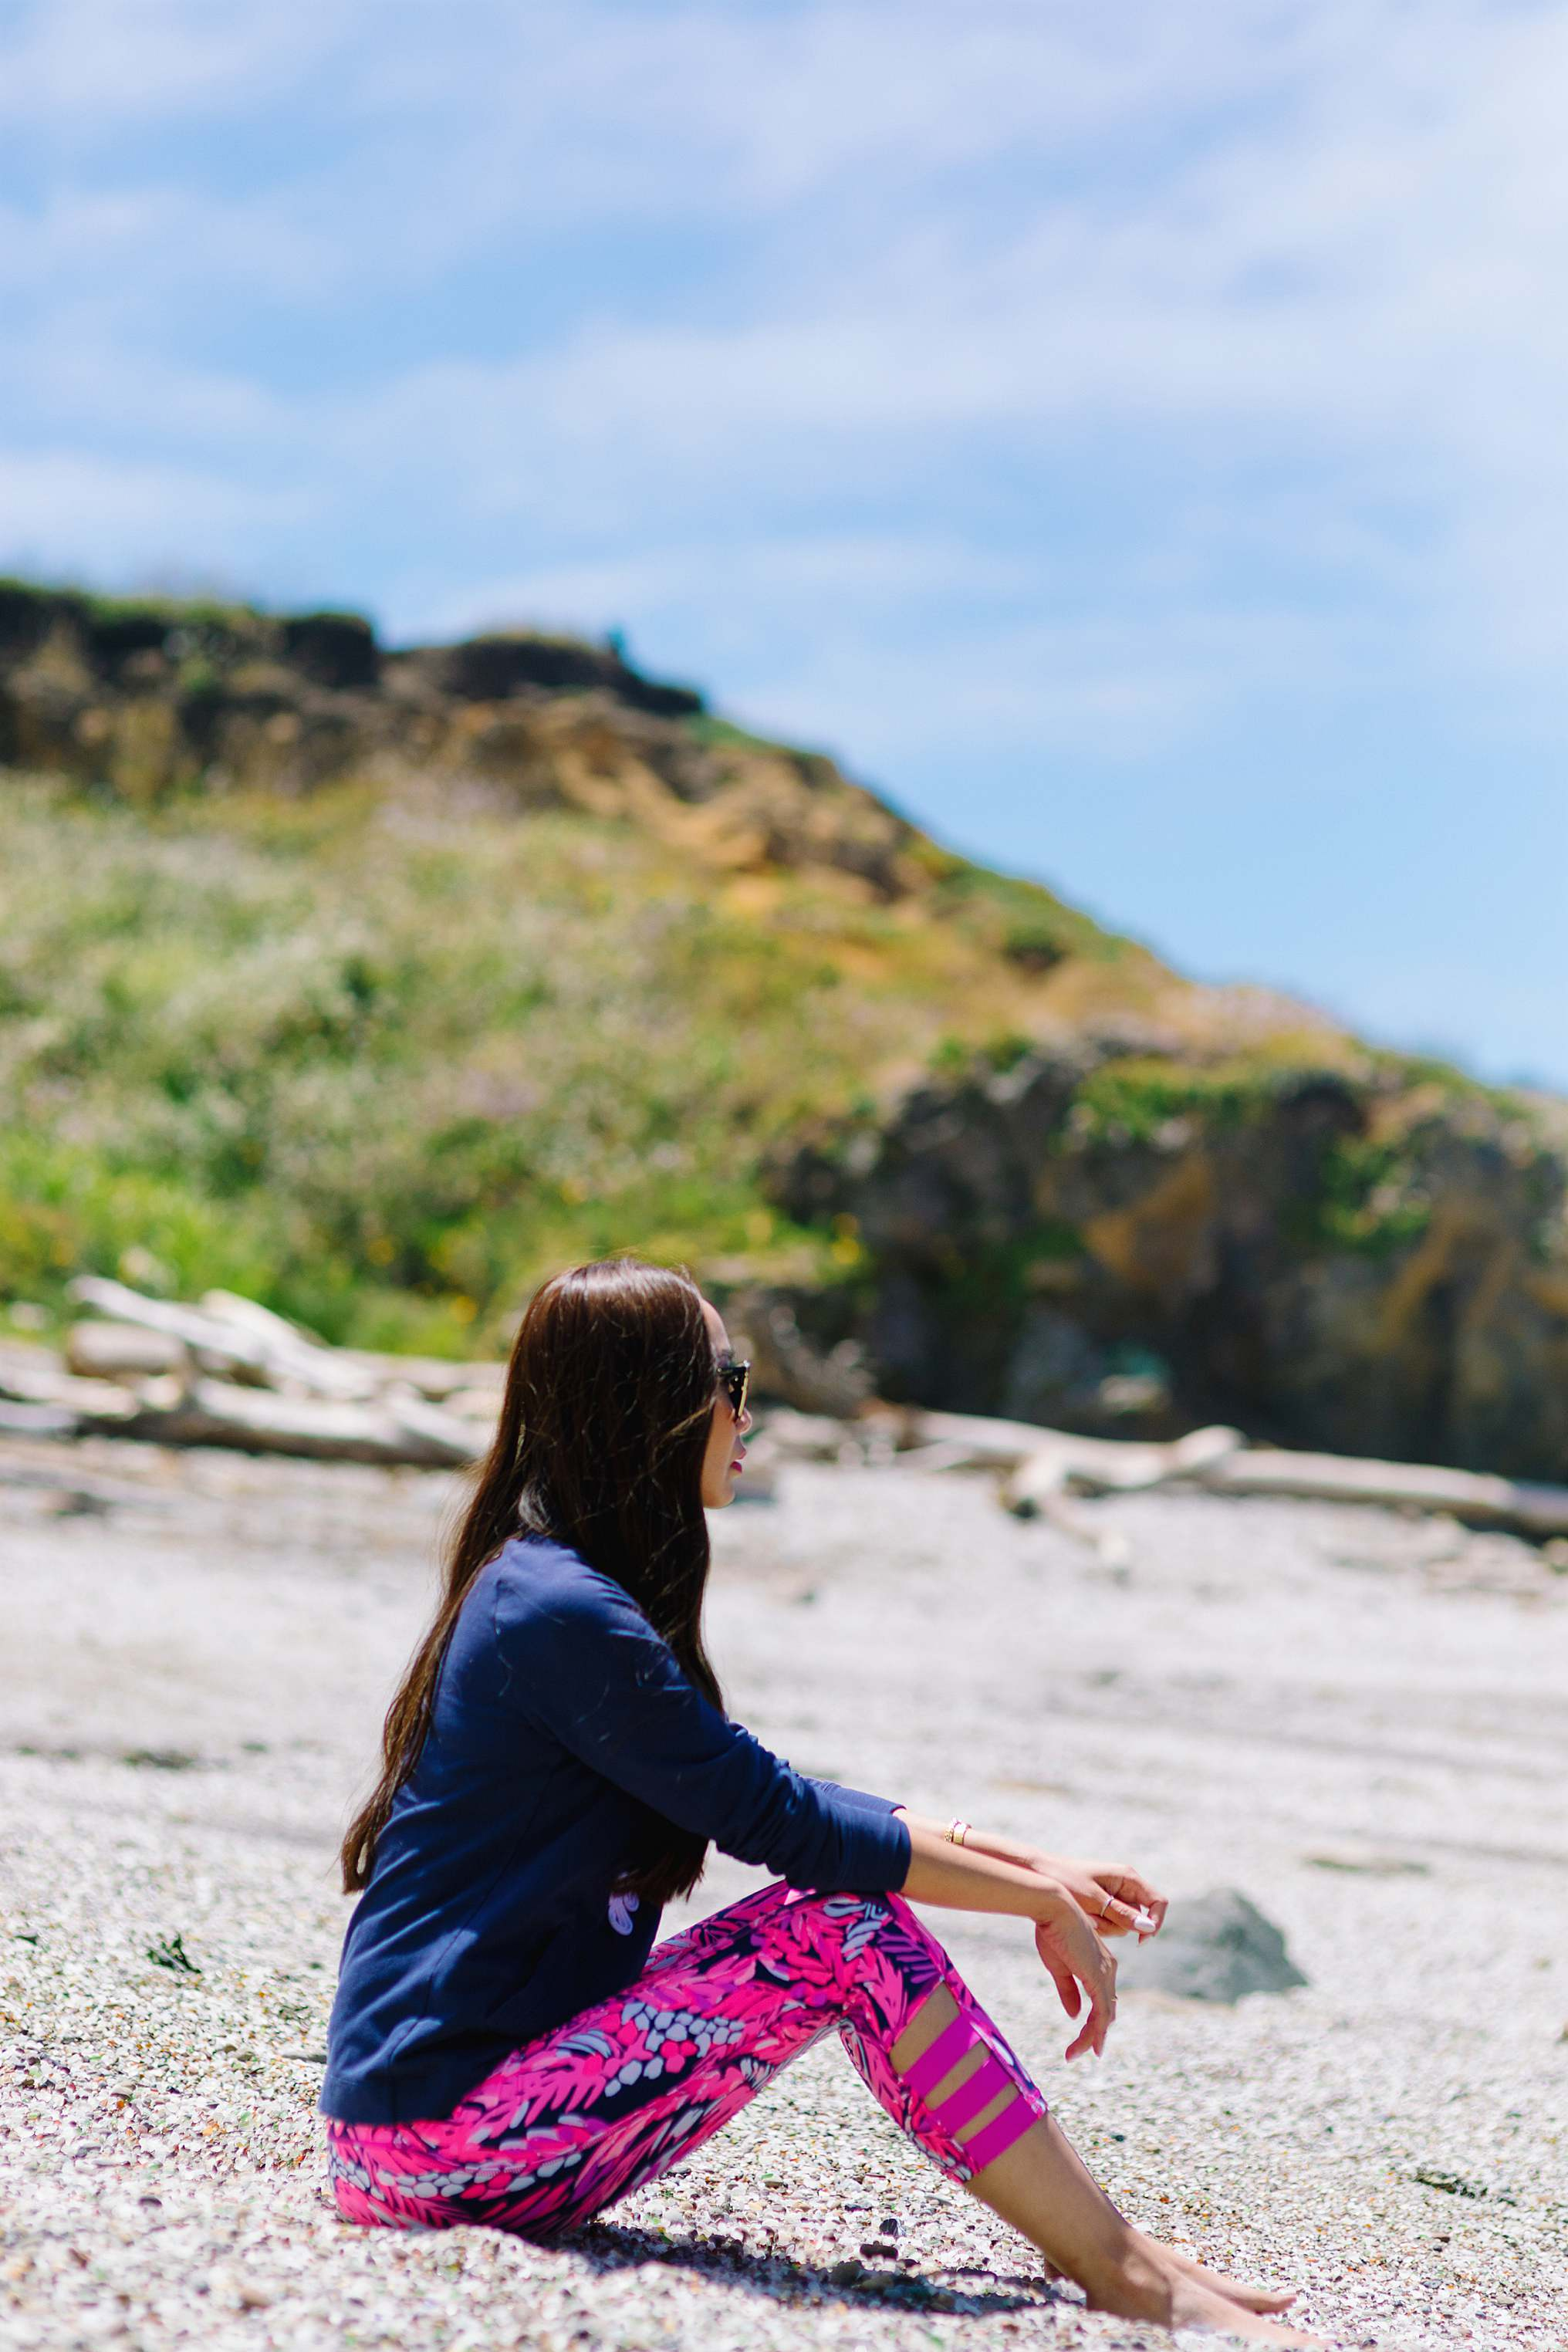 Diana Elizabeth blogger in Lilly pulitizer siting on glass beach in California Fort Bragg